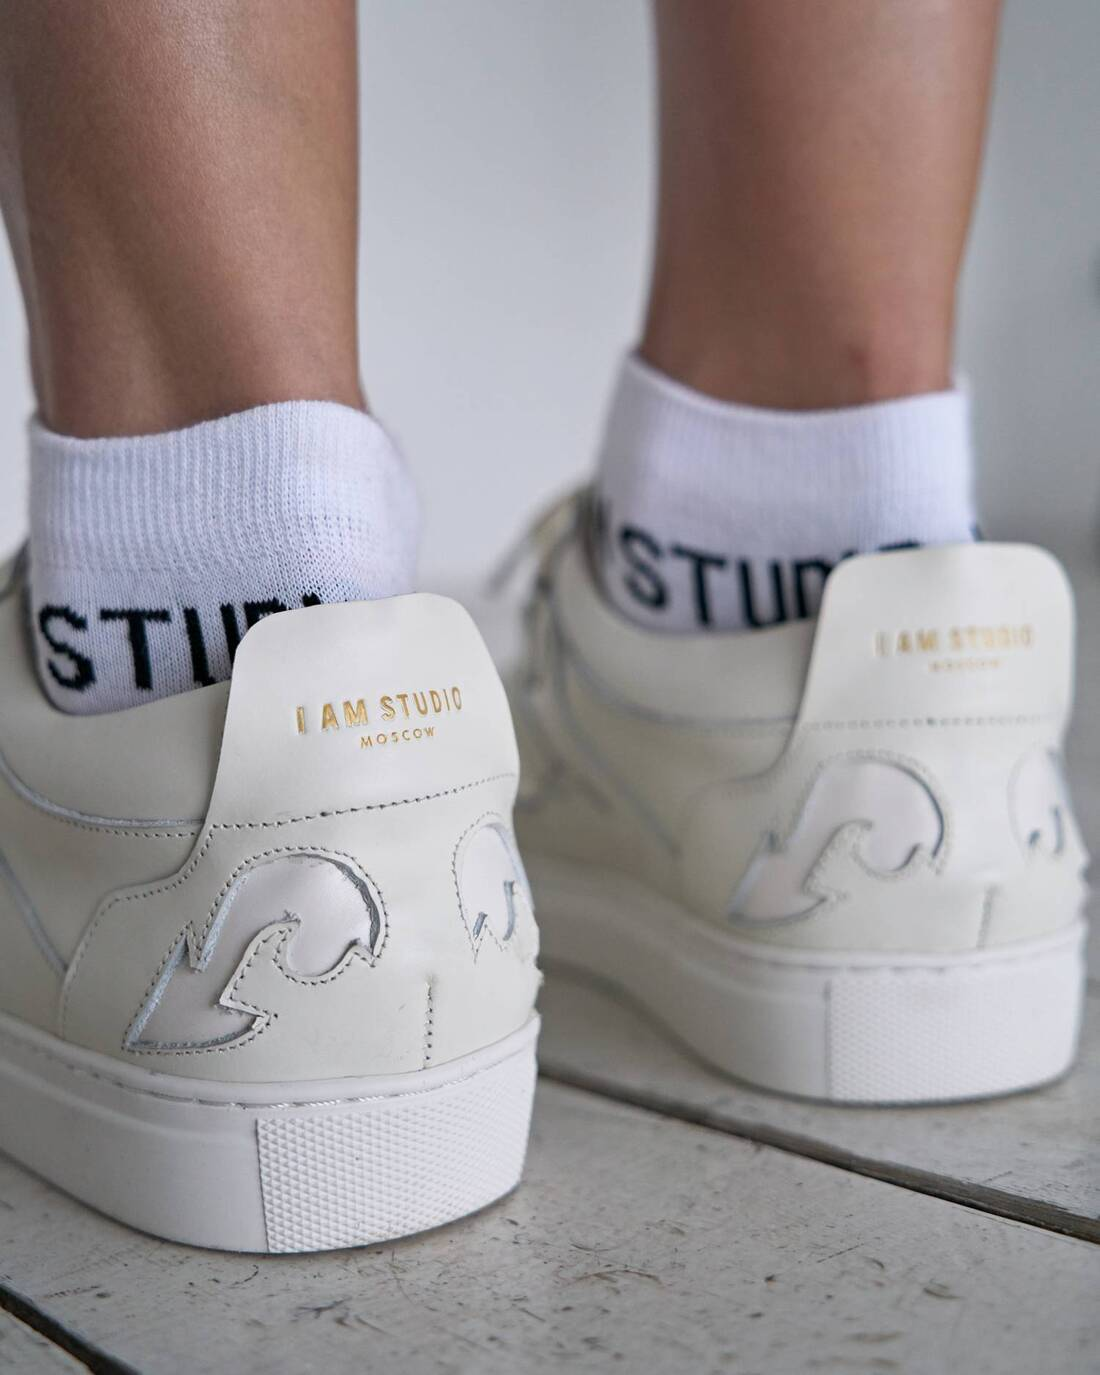 Cotton logo socks